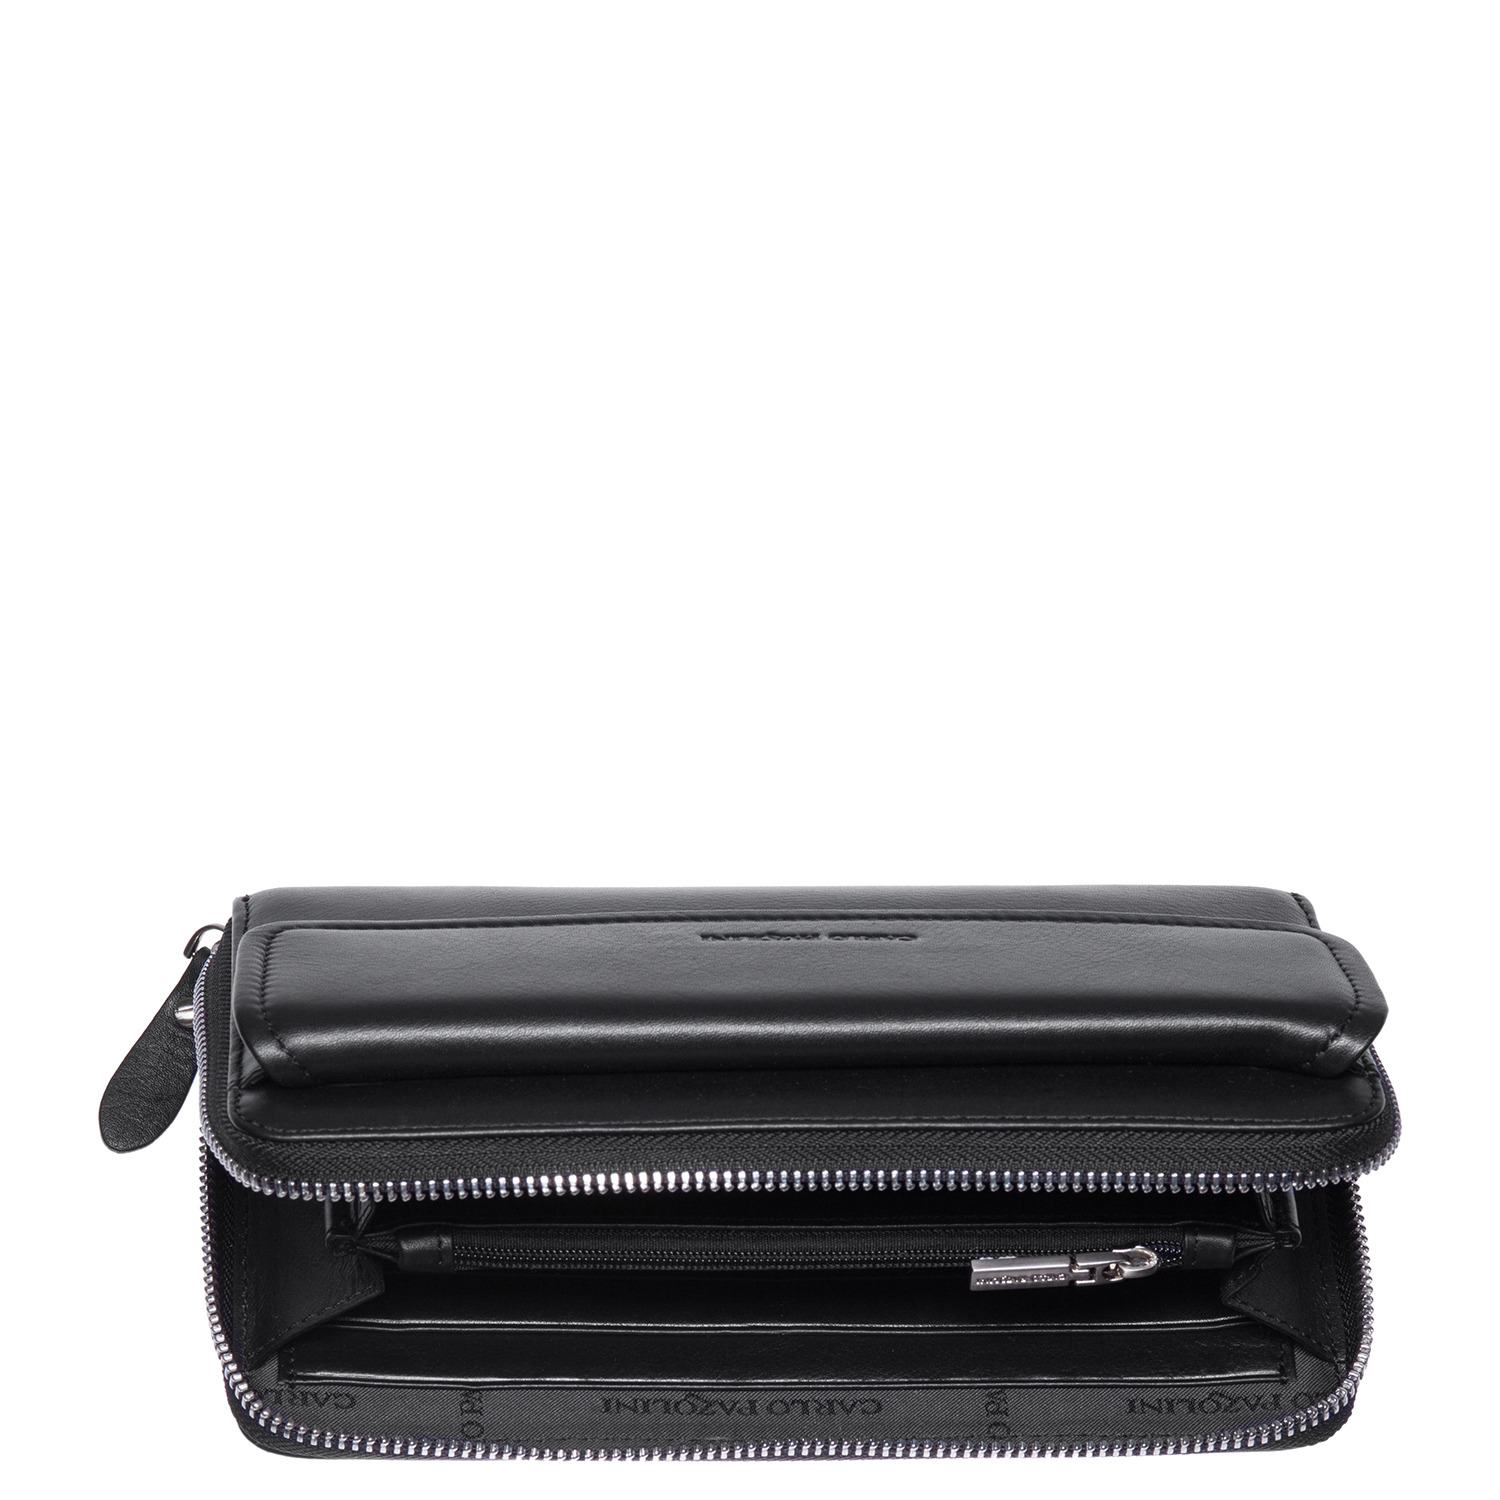 Travel wallet CARLO PAZOLINI BS-N6611-1R3